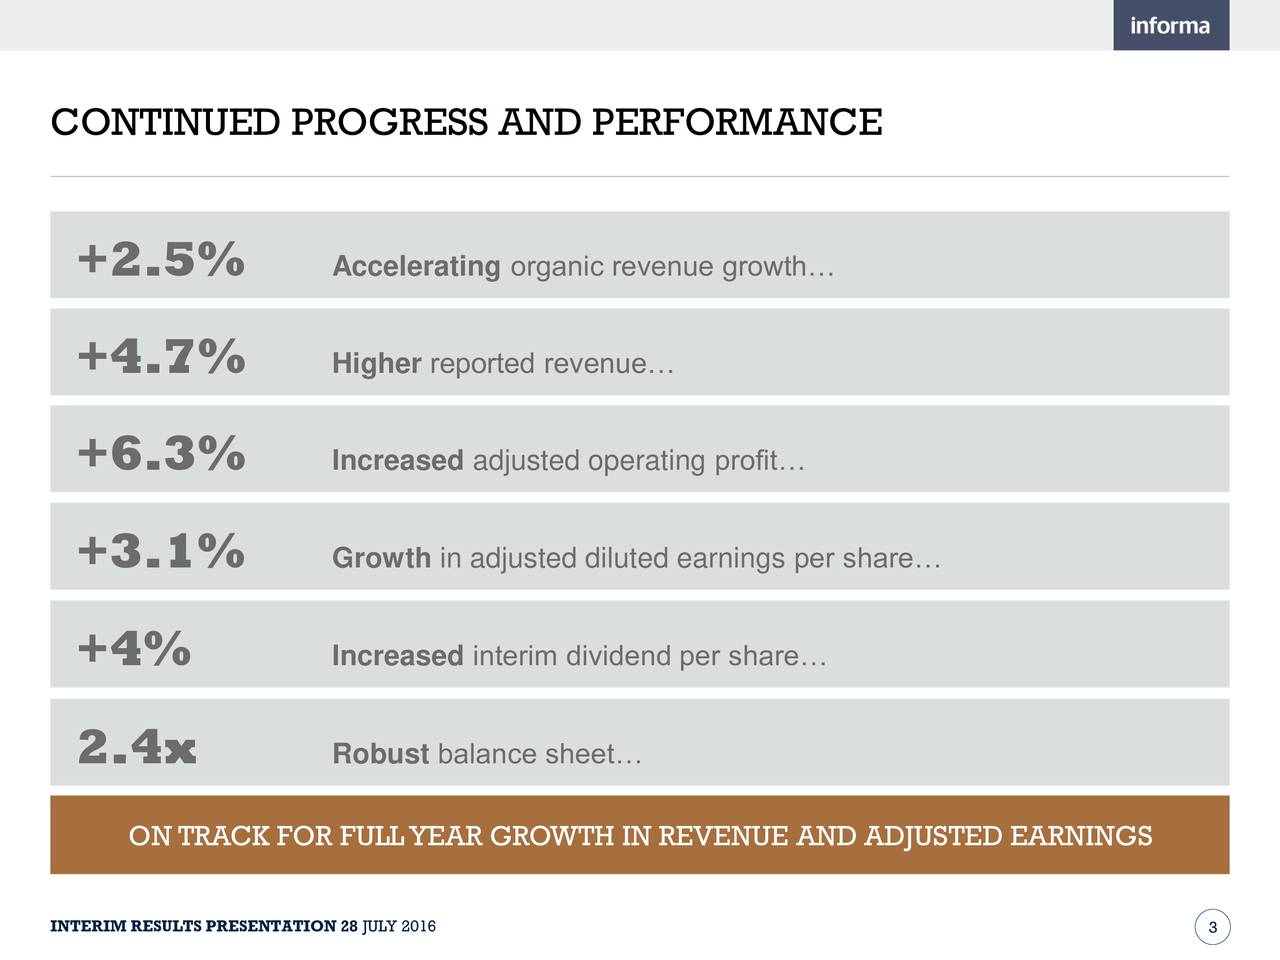 +2.5% Accelerating organic revenue growth +4.7% Higher reported revenue +6.3% Increased adjusted operating profit +3.1% Growth in adjusted diluted earnings per share +4% Increased interim dividend per share 2.4x Robust balance sheet ON TRACK FOR FULLYEAR GROWTH IN REVENUE AND ADJUSTED EARNINGS INTERIM RESULTS PRESENTATION 28 JULY 2016 3